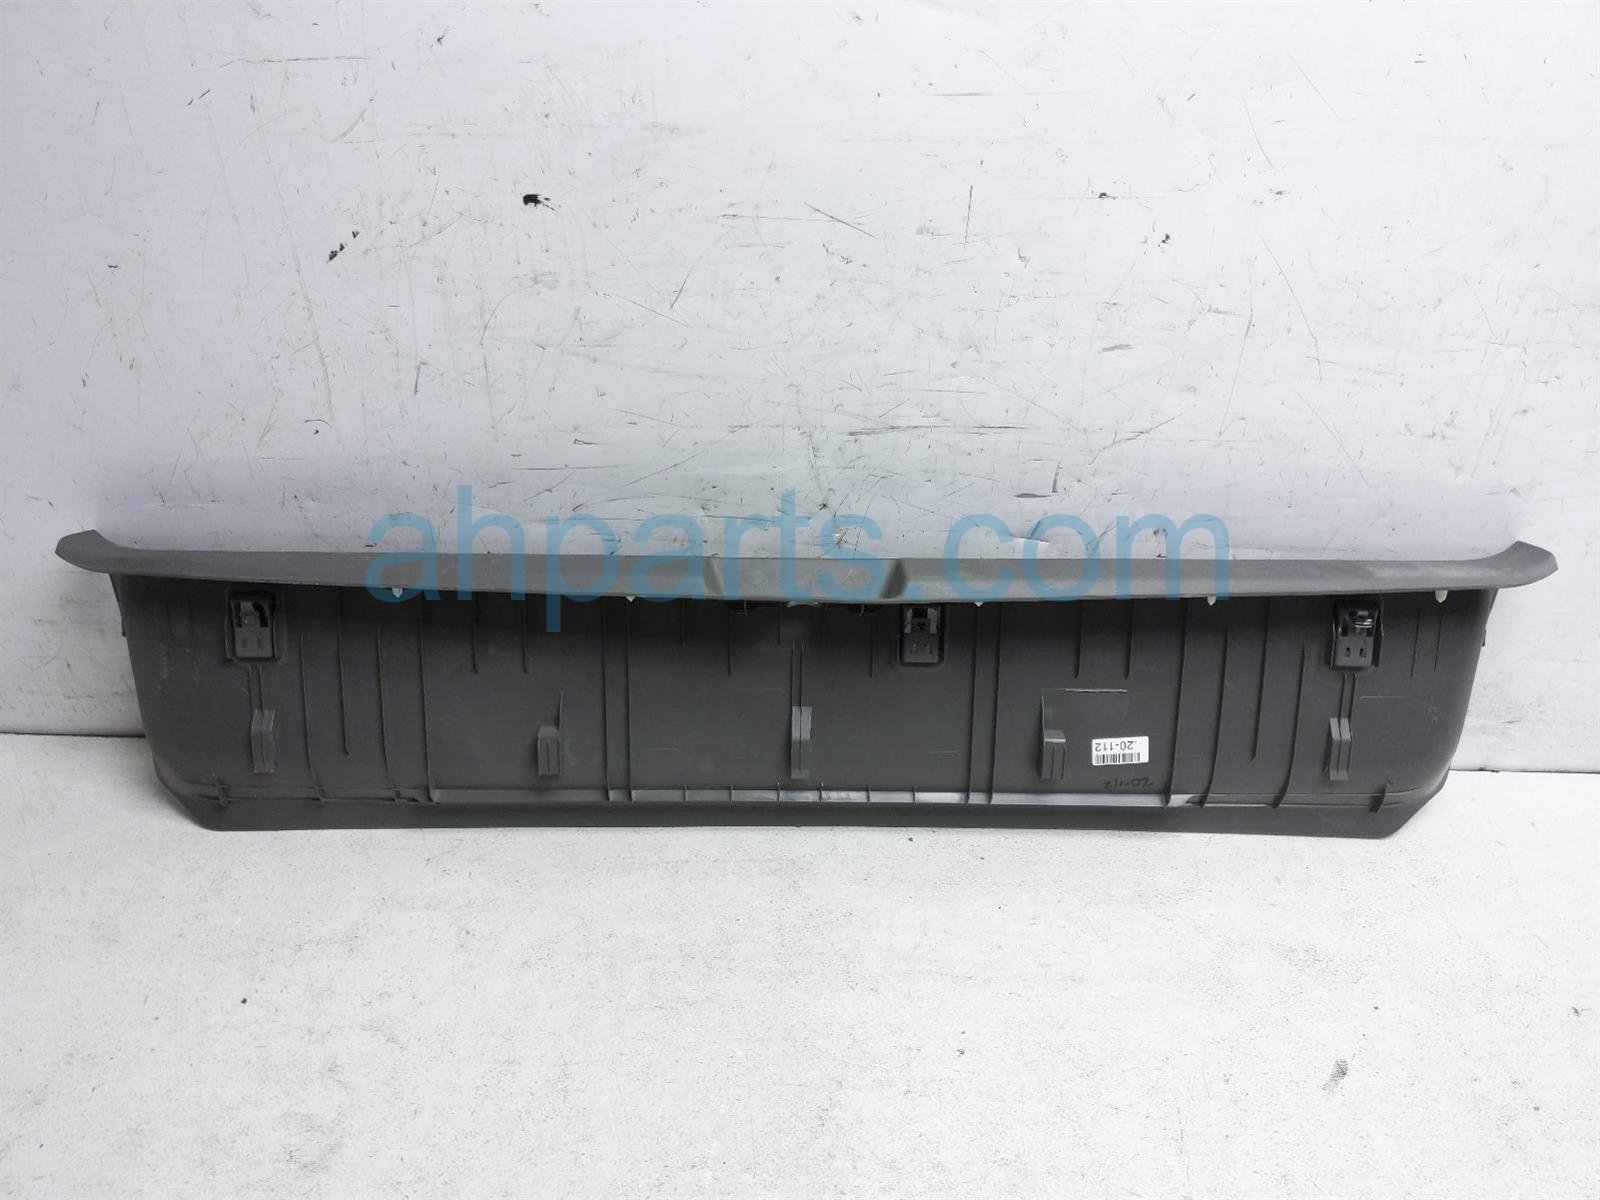 2013 Toyota Sienna Cargo Rear Scuff Plate Trim Cover 67935 08020 B1 Replacement